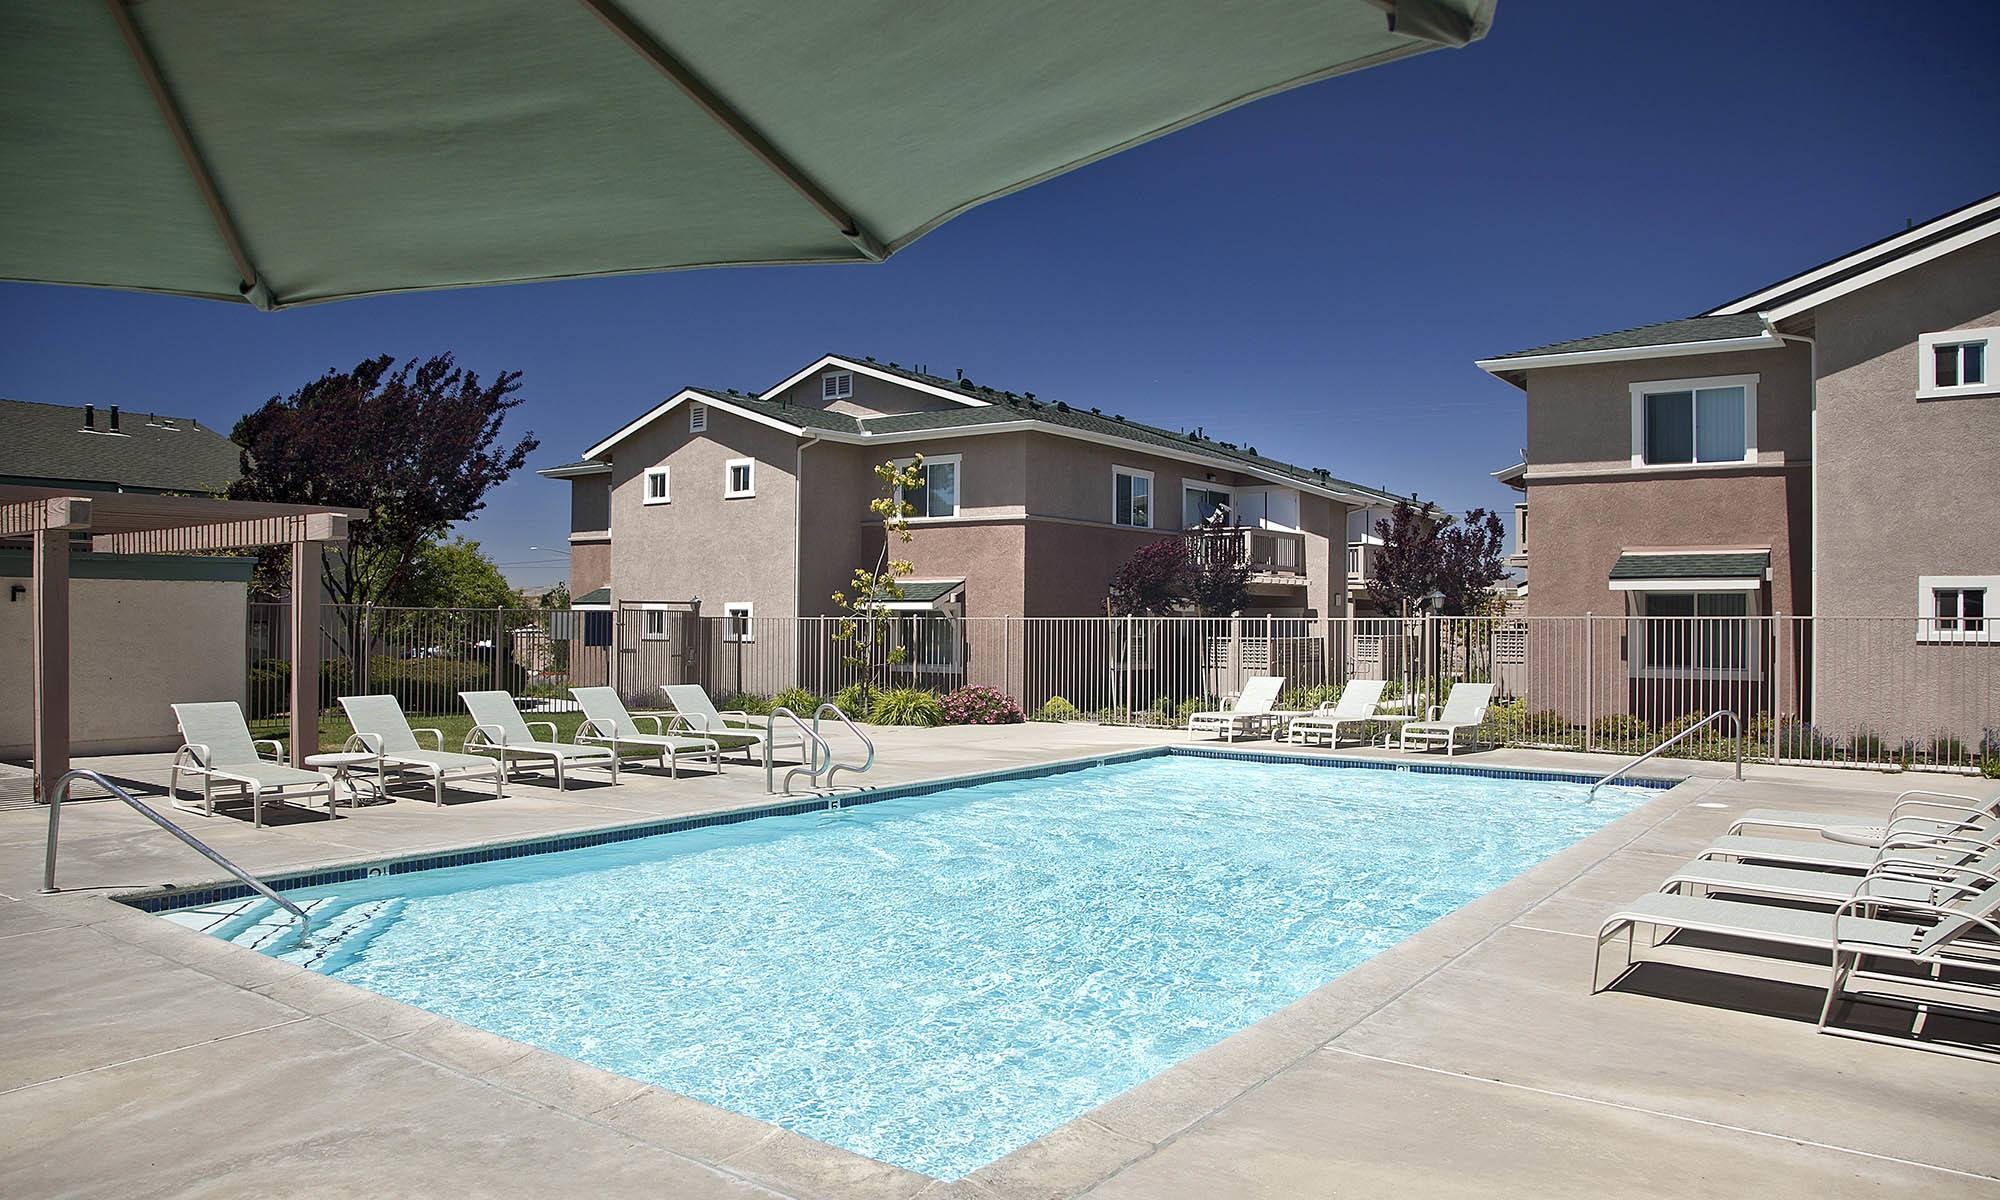 Welcome to apartments in Santa Maria, CA